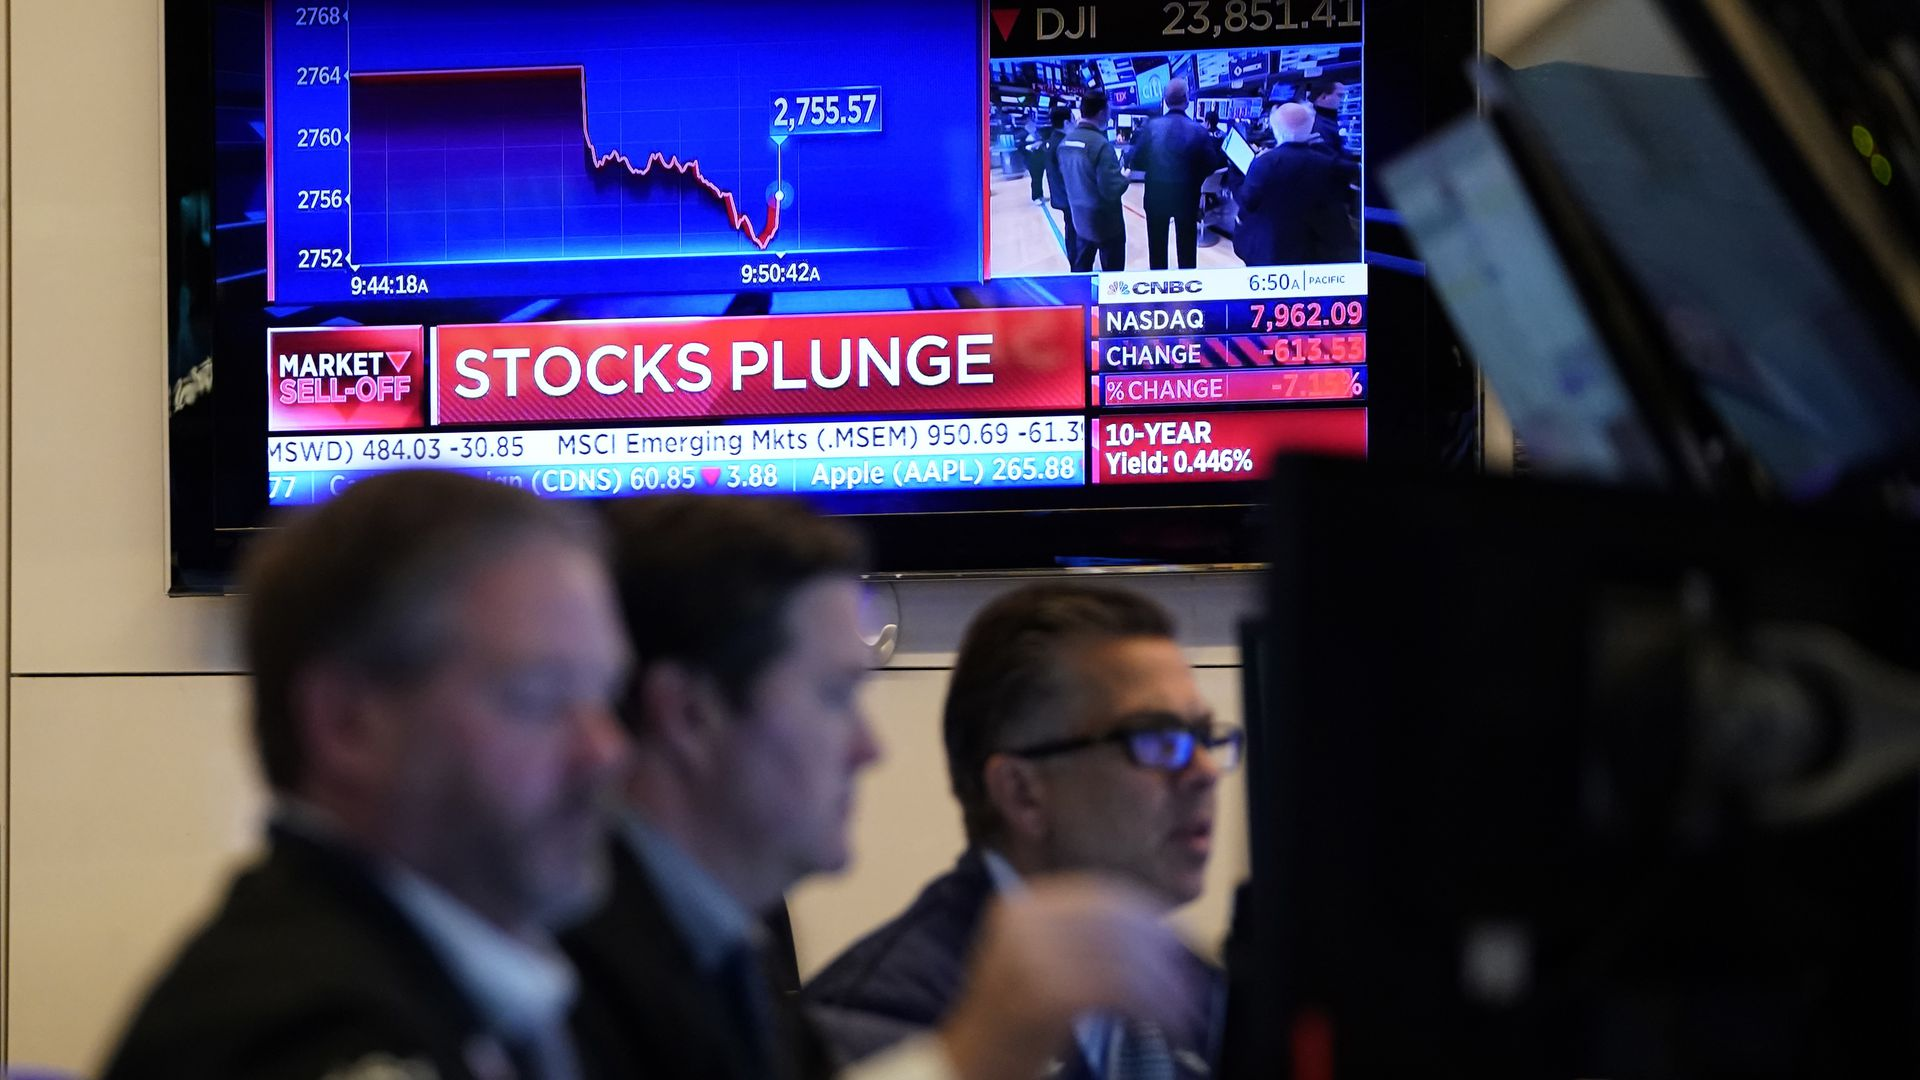 Global stock markets plunged as growing fears of the coronavirus wreak havoc on the economy